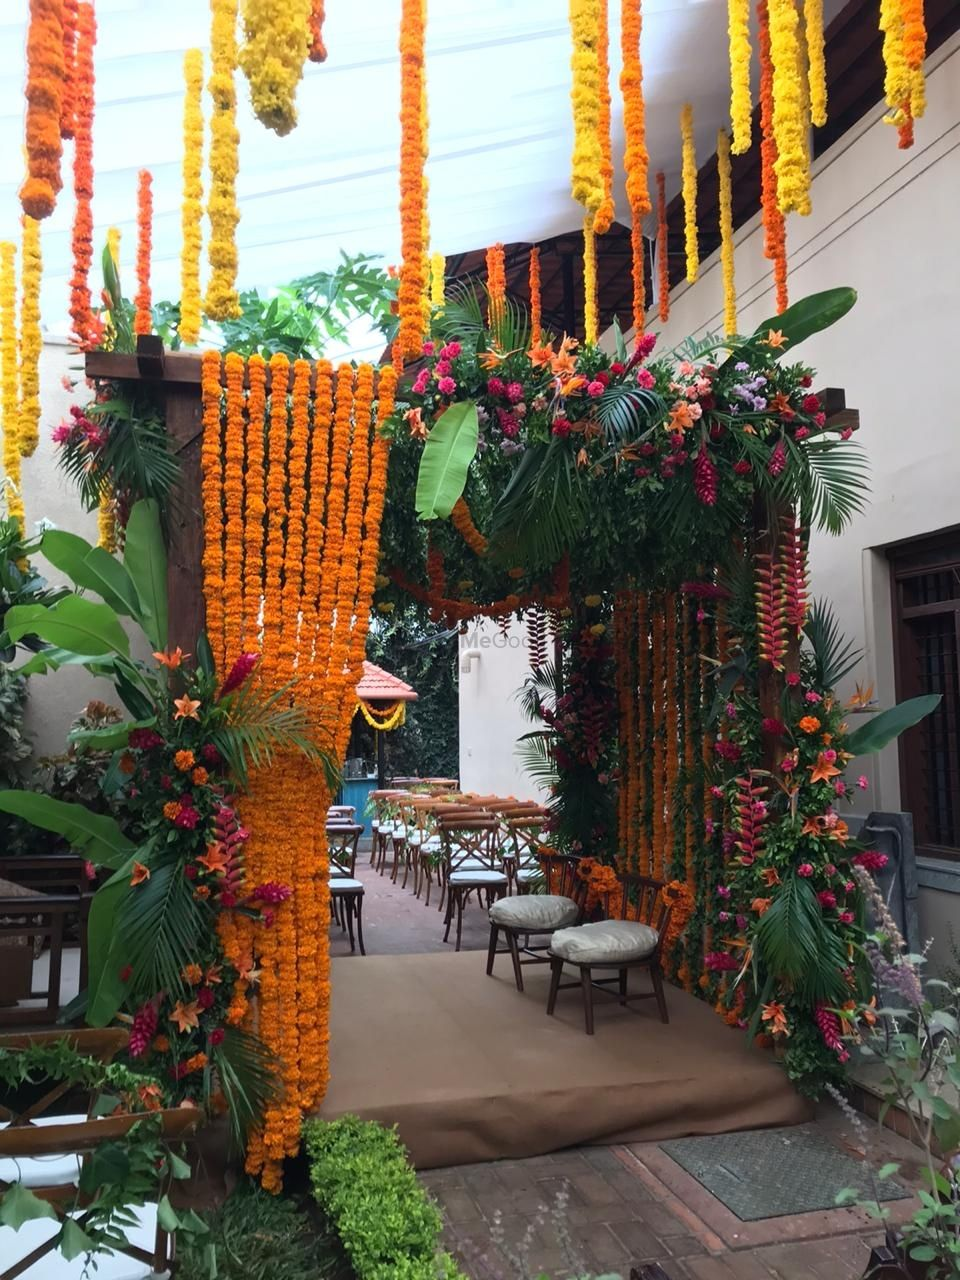 Photo of Entrance decor done with marigold garlands, lush greens and other flowers.